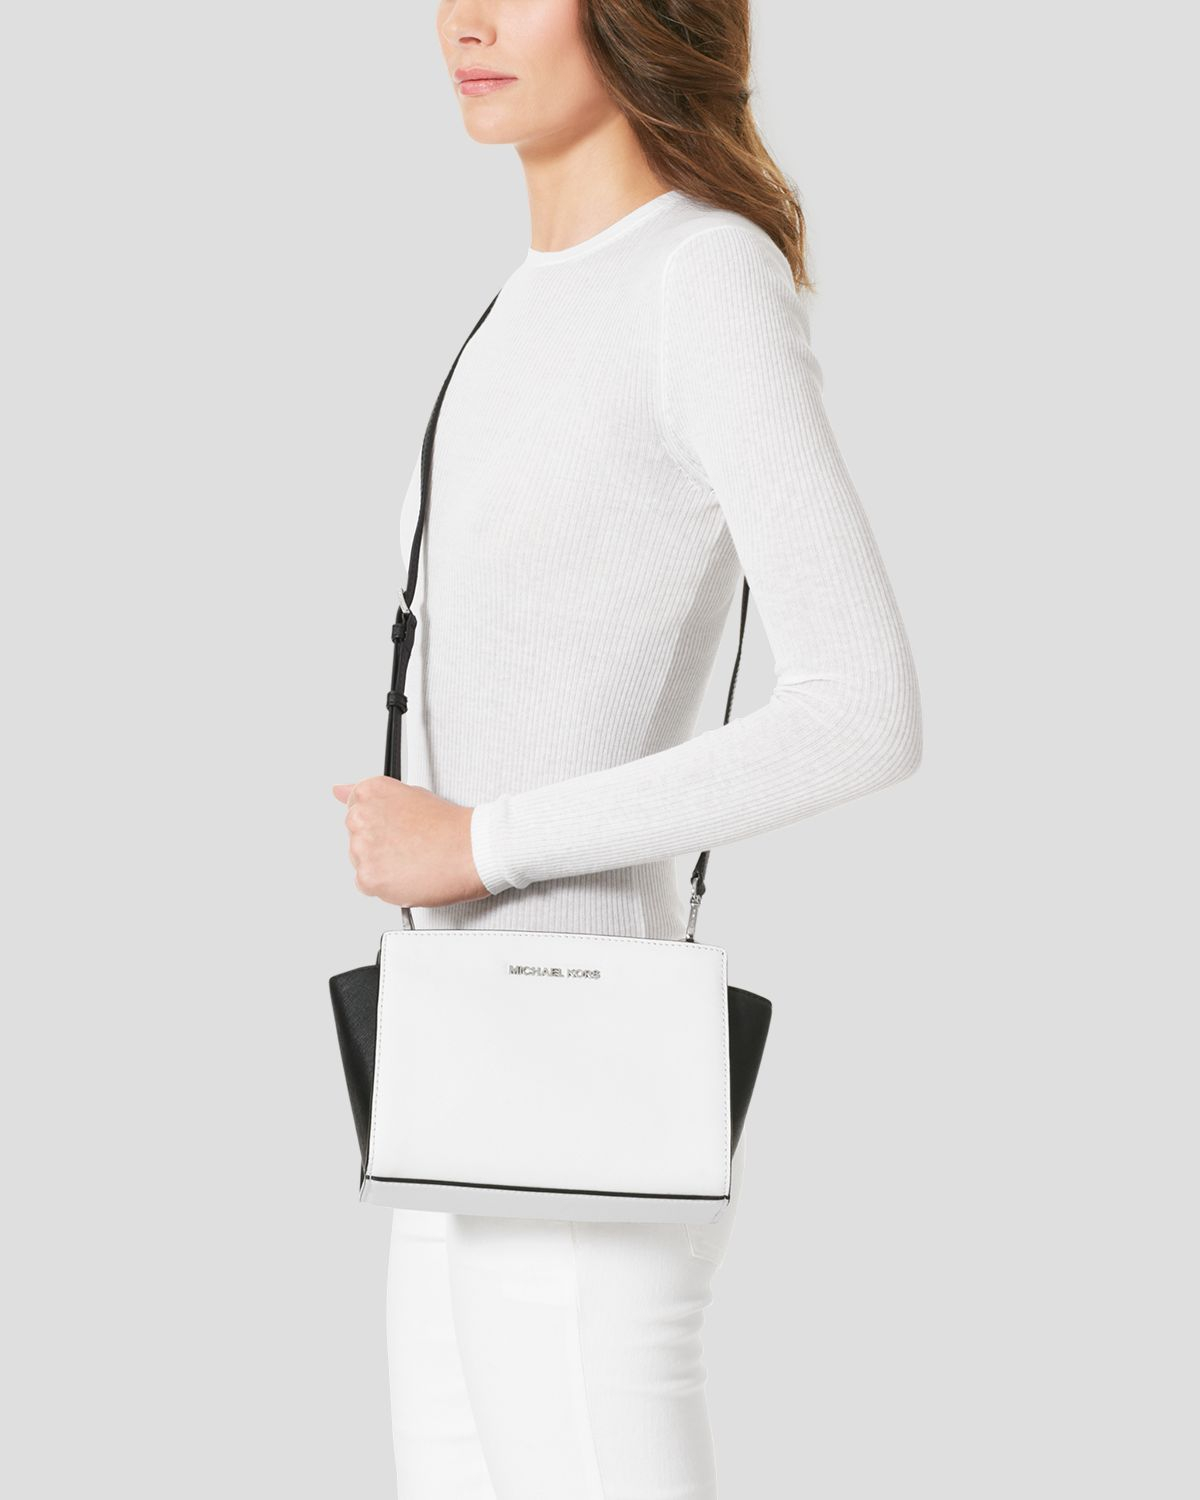 526a6aae57f5 ... new style lyst michael michael kors crossbody selma medium colorblock  messenger in white 16627 1aa0a